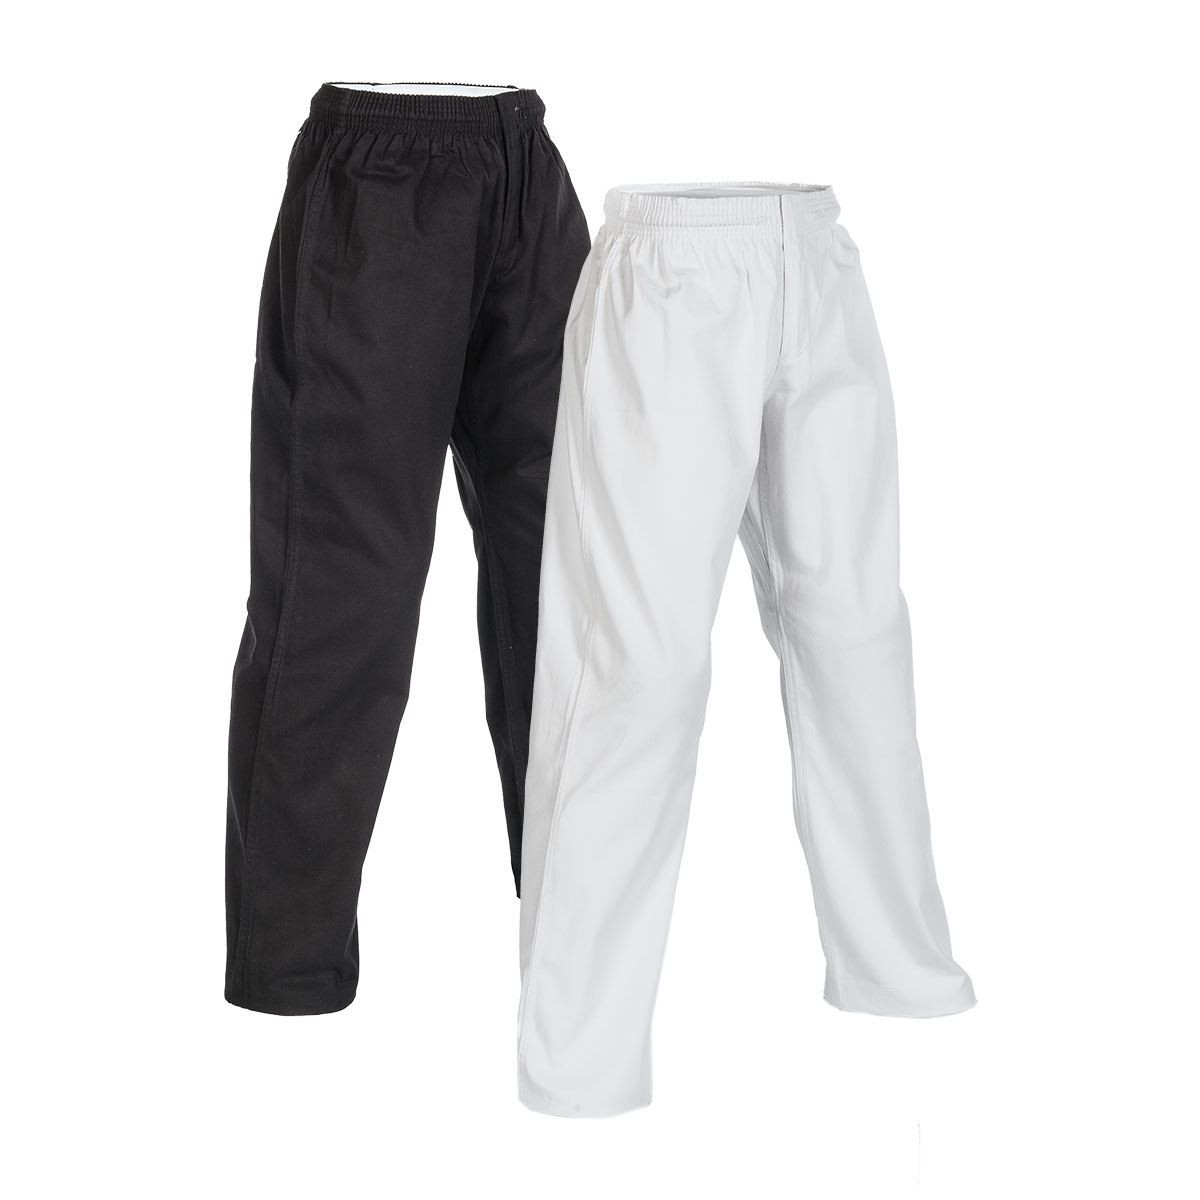 Home / Collections / Womens Karate Martial Arts Uniform Separates Womens Karate Martial Arts Uniform Separates Uniform separates for the ultimate fit for ladies.